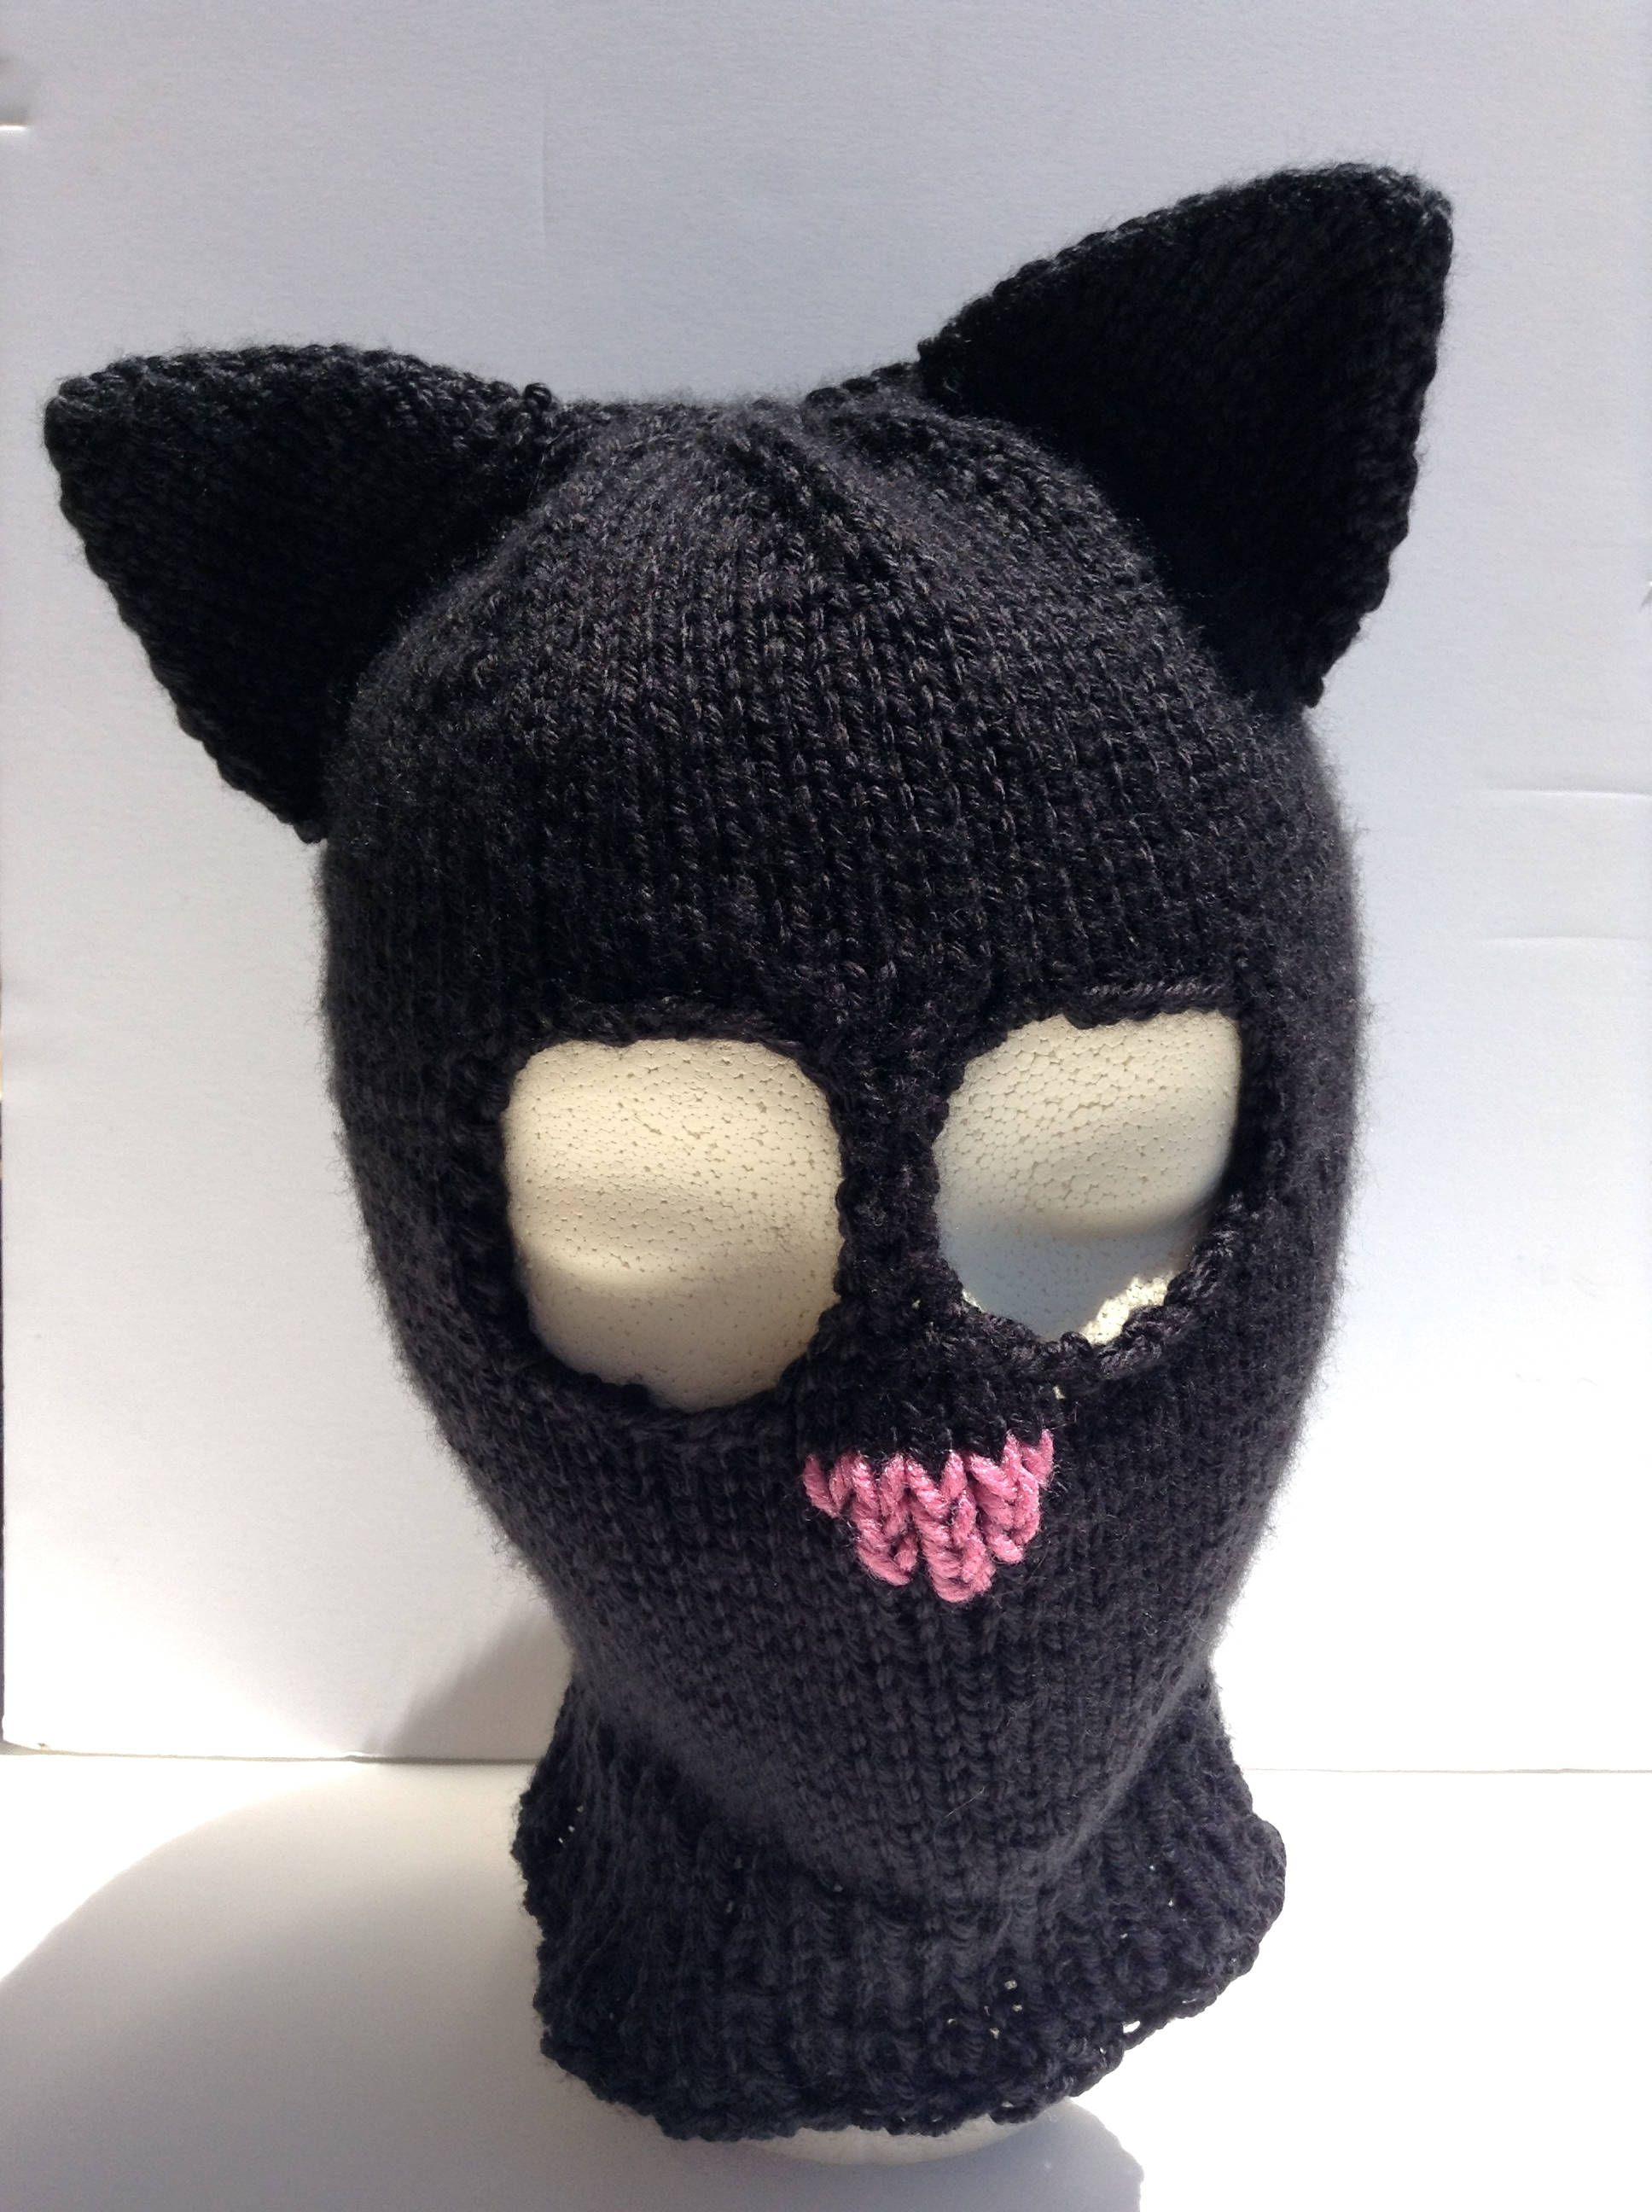 Cat Ears Ski mask Halloween costume by Archaeopterknits